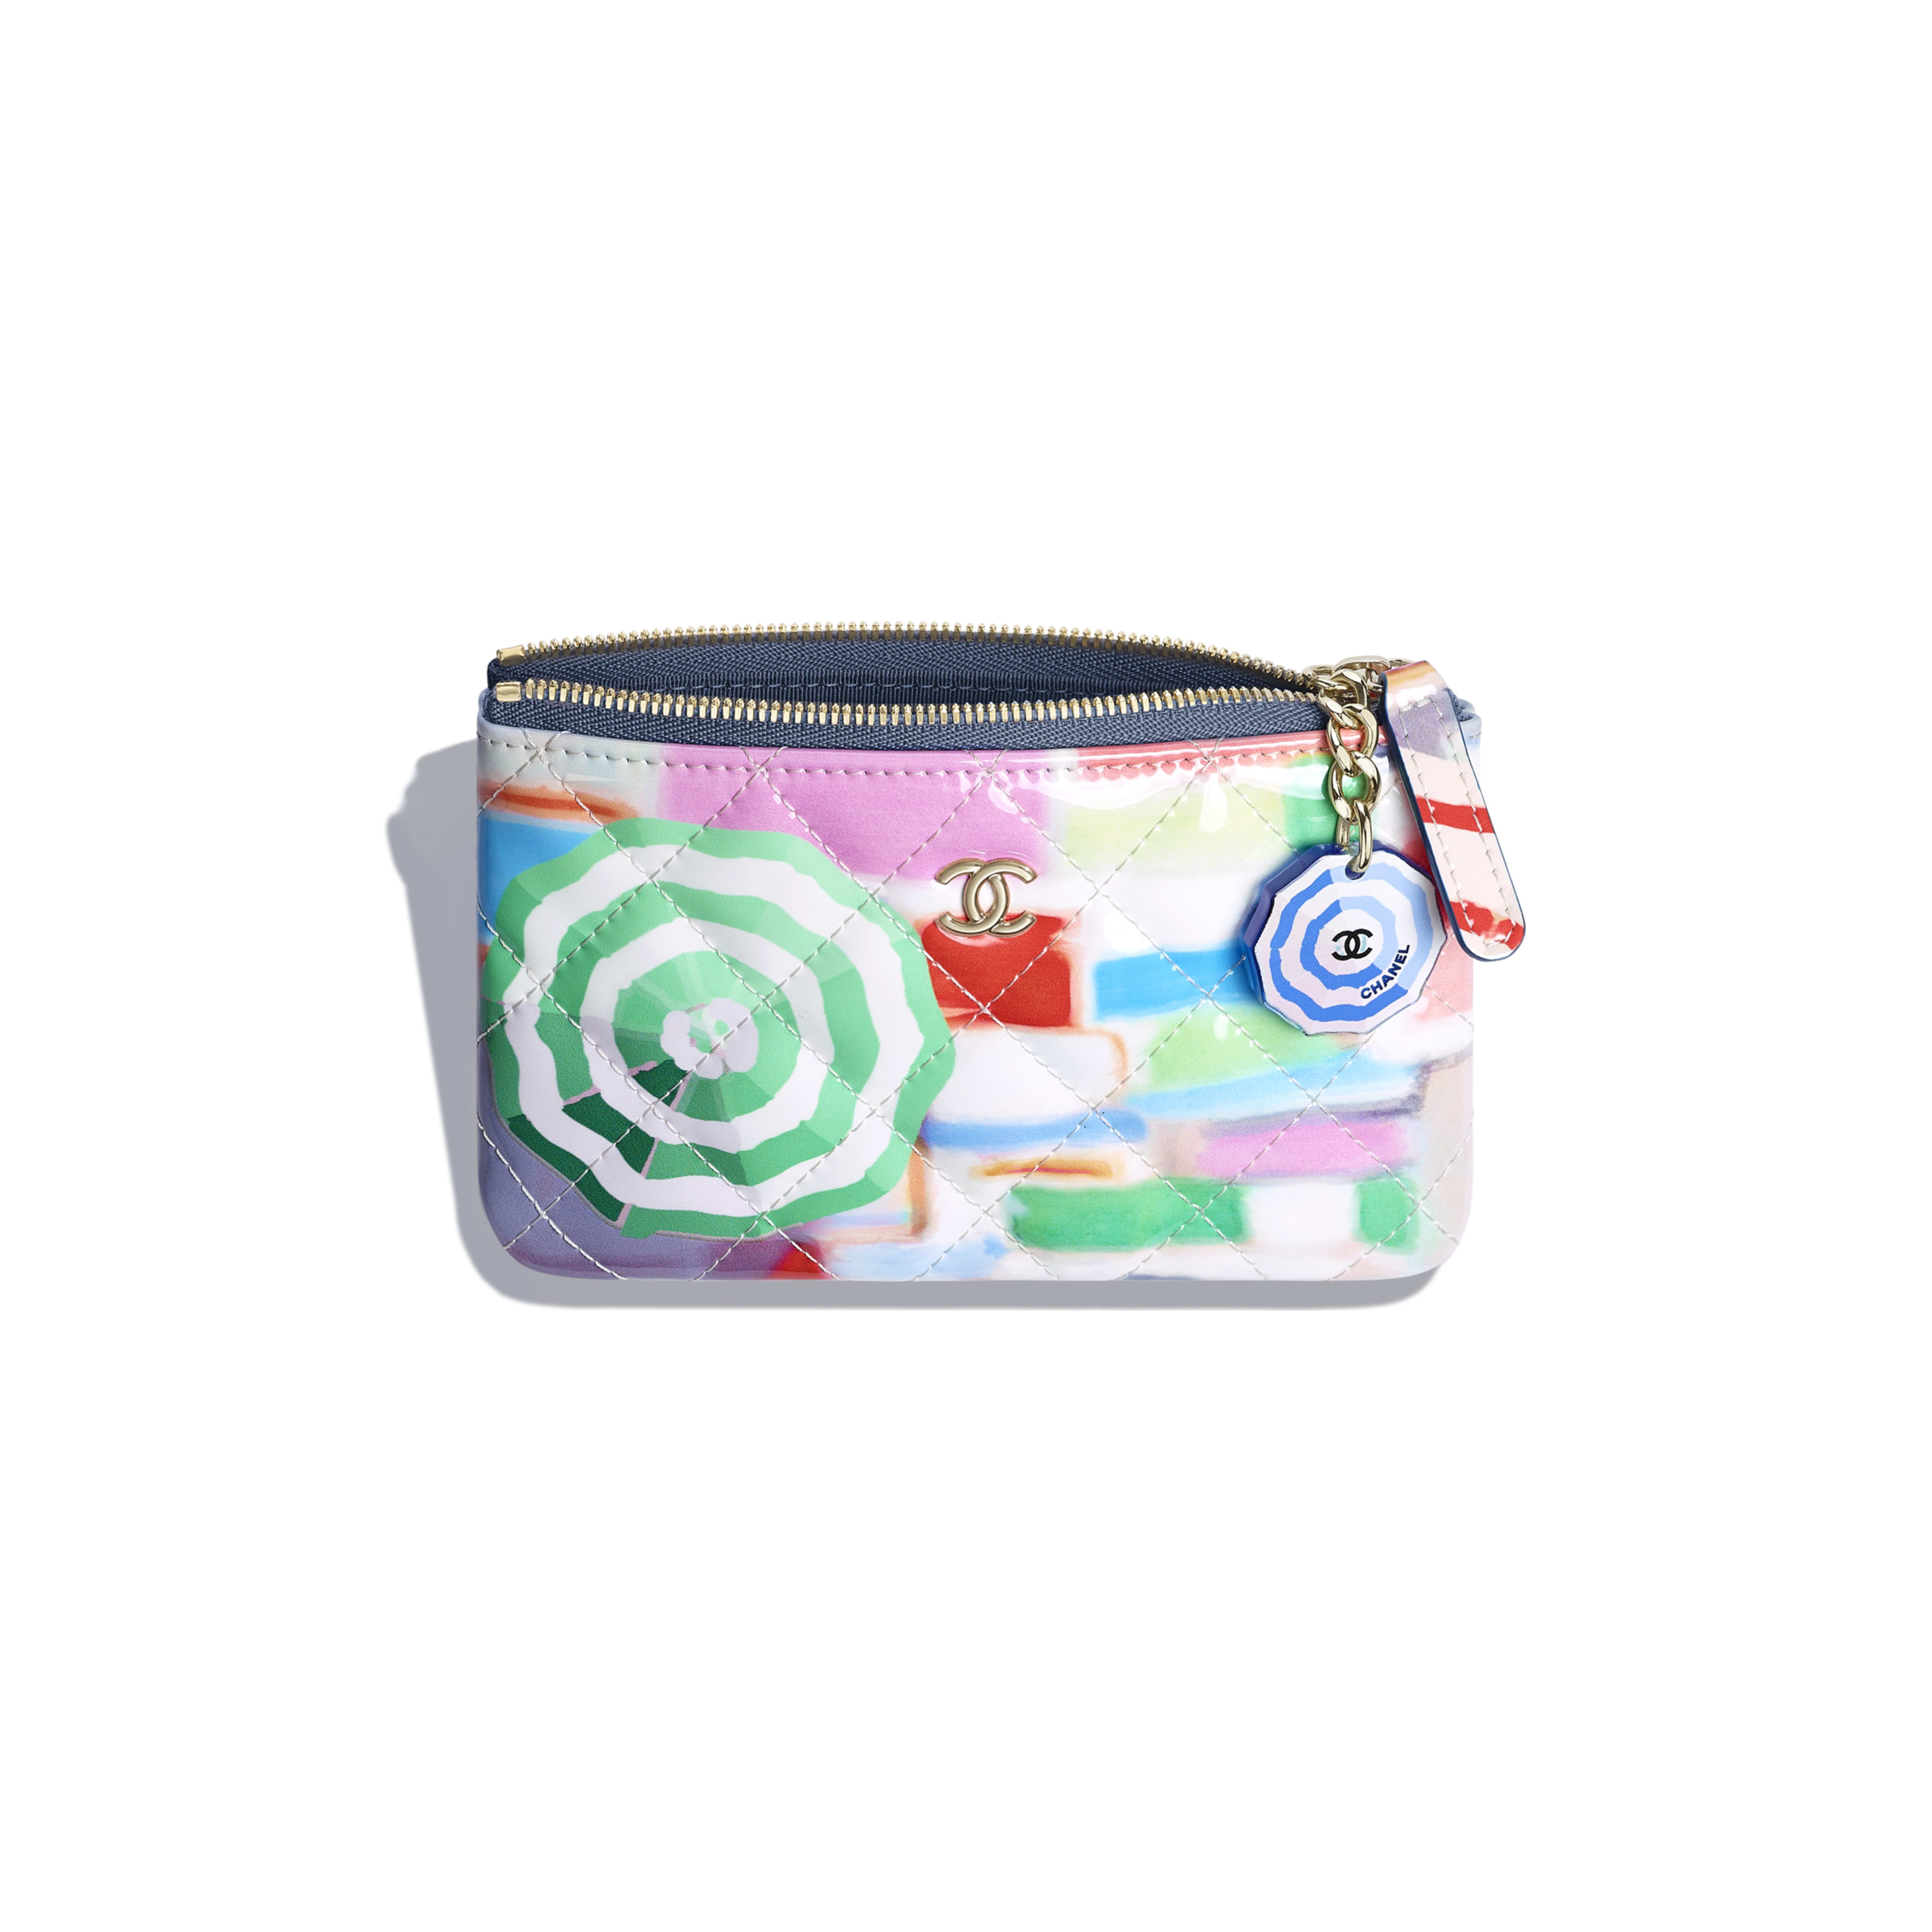 d587b5c7c886 Classic Small Pouch - Multicolor - Printed Patent Calfskin   Gold-Tone Metal  - Other ...